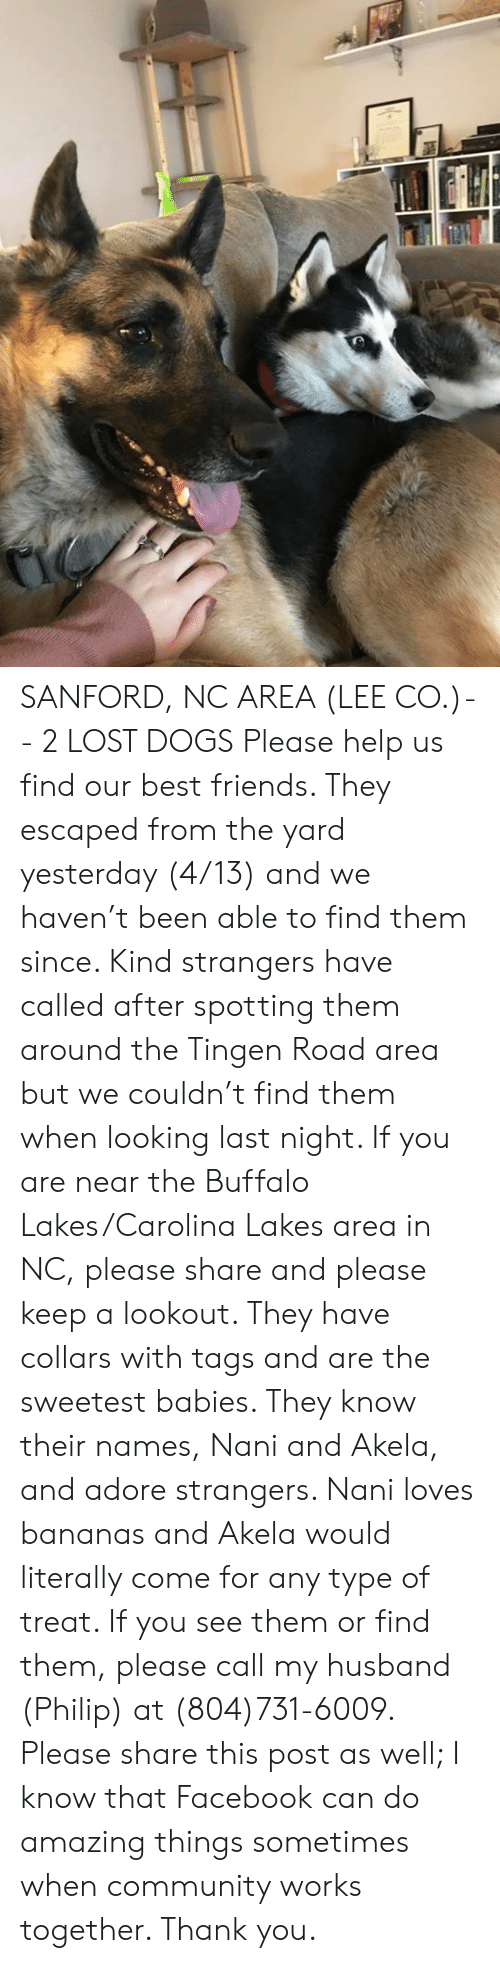 Community, Dogs, and Facebook: SANFORD, NC AREA (LEE CO.)-- 2 LOST DOGS  Please help us find our best friends. They escaped from the yard yesterday (4/13) and we haven't been able to find them since. Kind strangers have called after spotting them around the Tingen Road area but we couldn't find them when looking last night.  If you are near the Buffalo Lakes/Carolina Lakes area in NC, please share and please keep a lookout. They have collars with tags and are the sweetest babies. They know their names, Nani and Akela, and adore strangers. Nani loves bananas and Akela would literally come for any type of treat.   If you see them or find them, please call my husband (Philip) at (804)731-6009. Please share this post as well; I know that Facebook can do amazing things sometimes when community works together. Thank you.